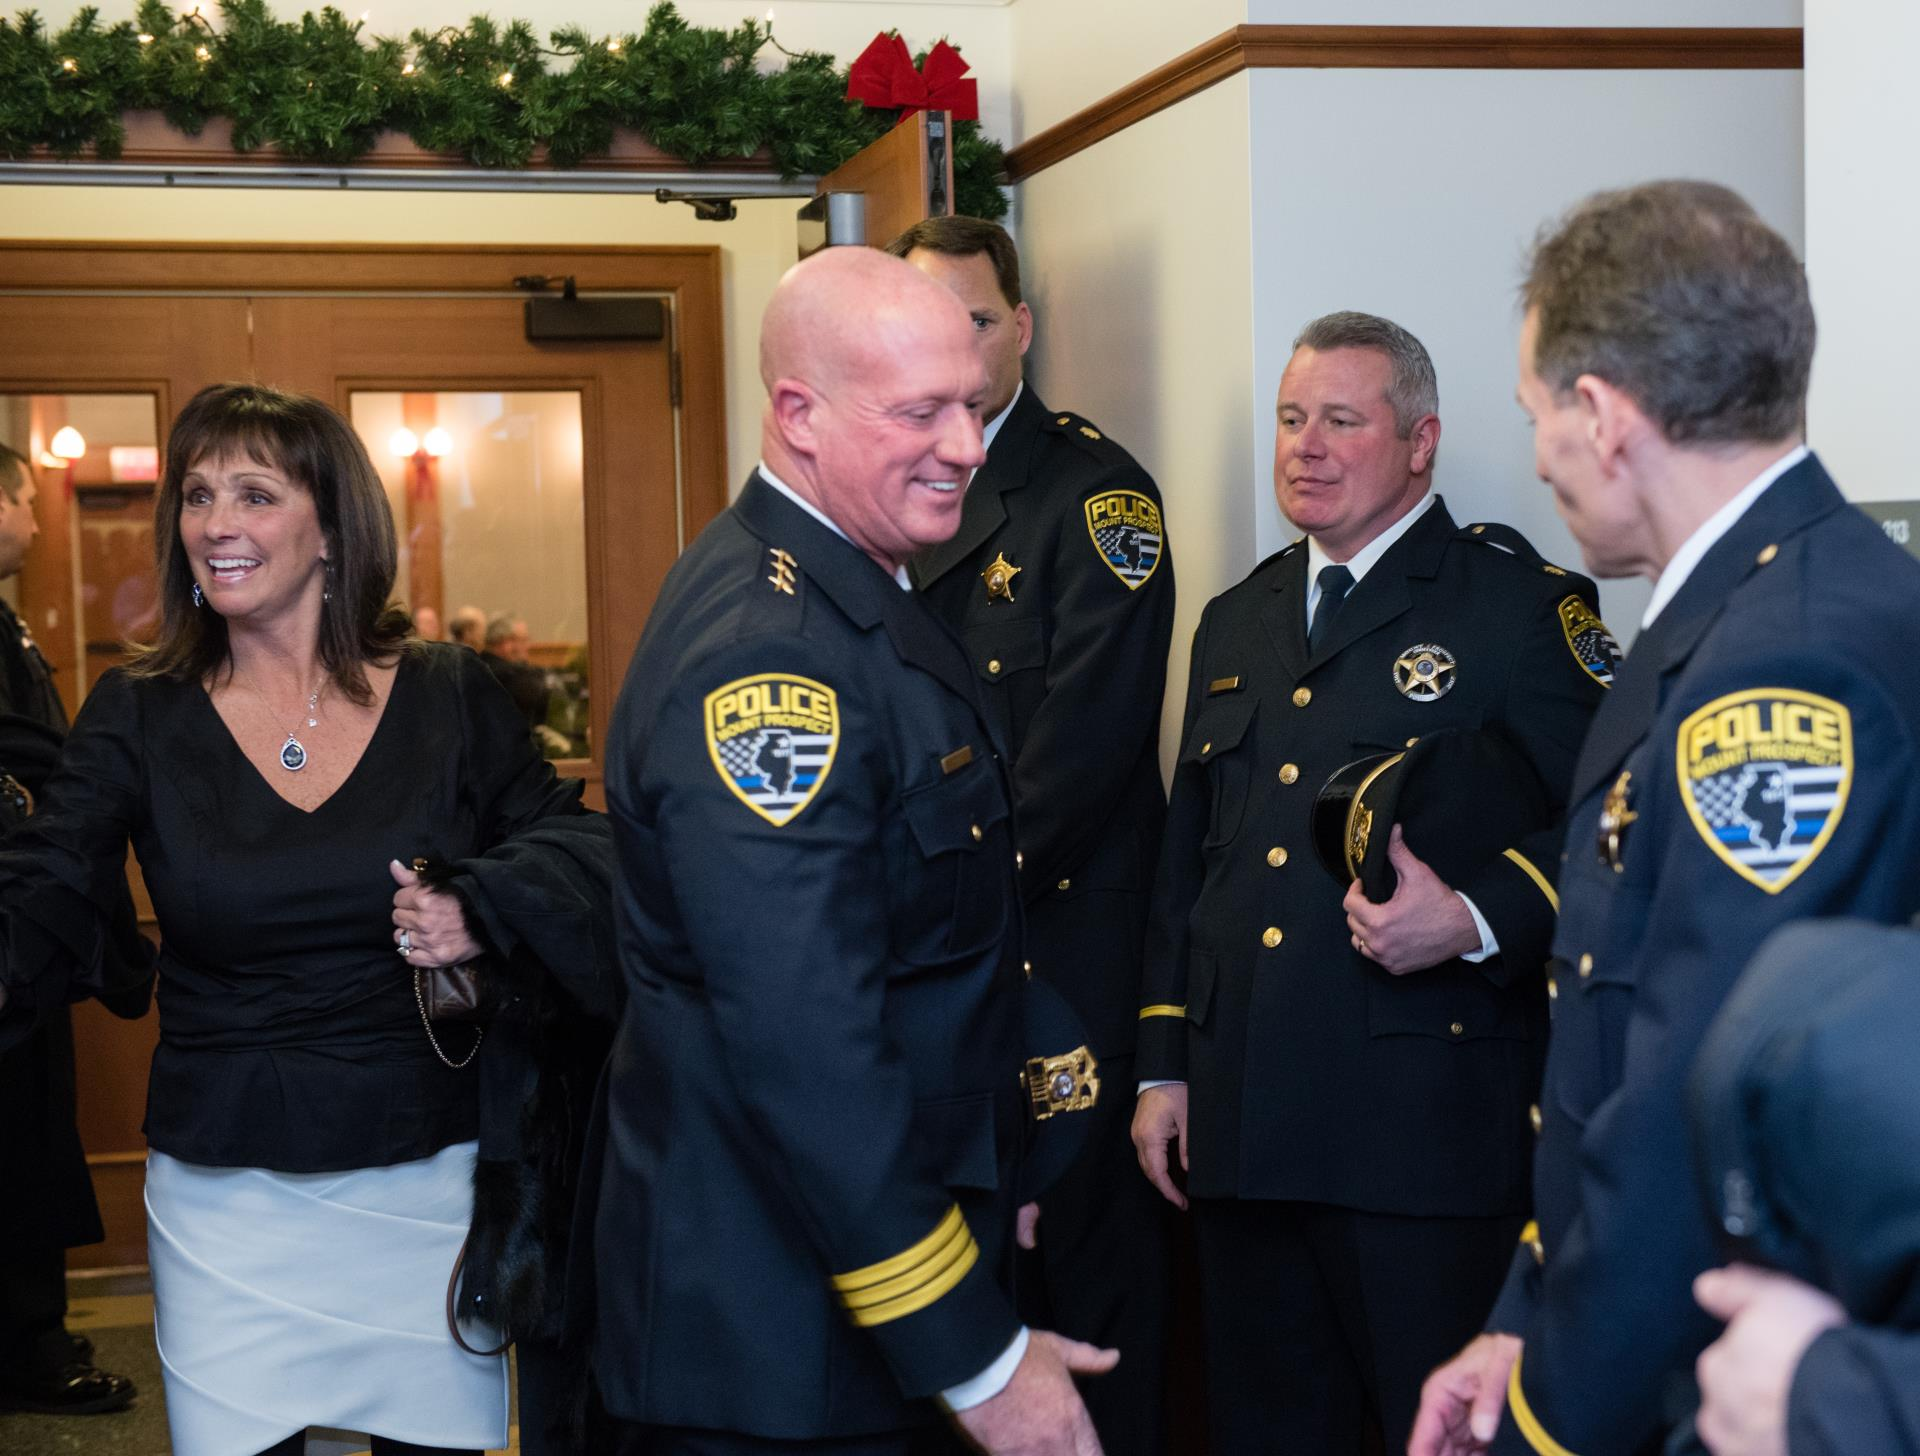 Chief Koziol Swearing-In Ceremony Final-4263